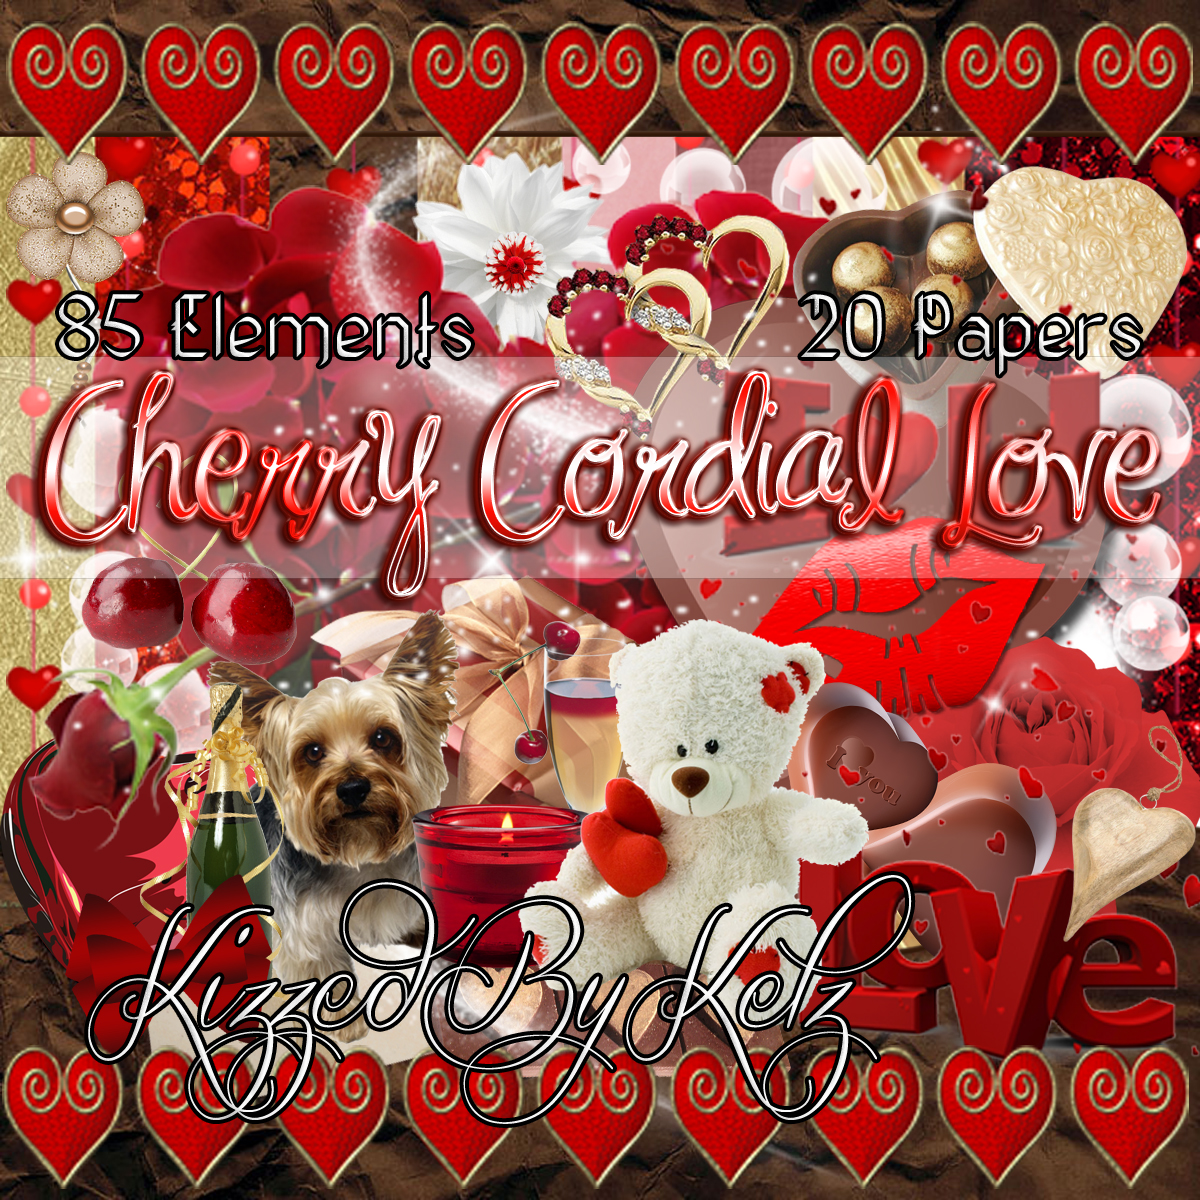 Cherry Cordial Love